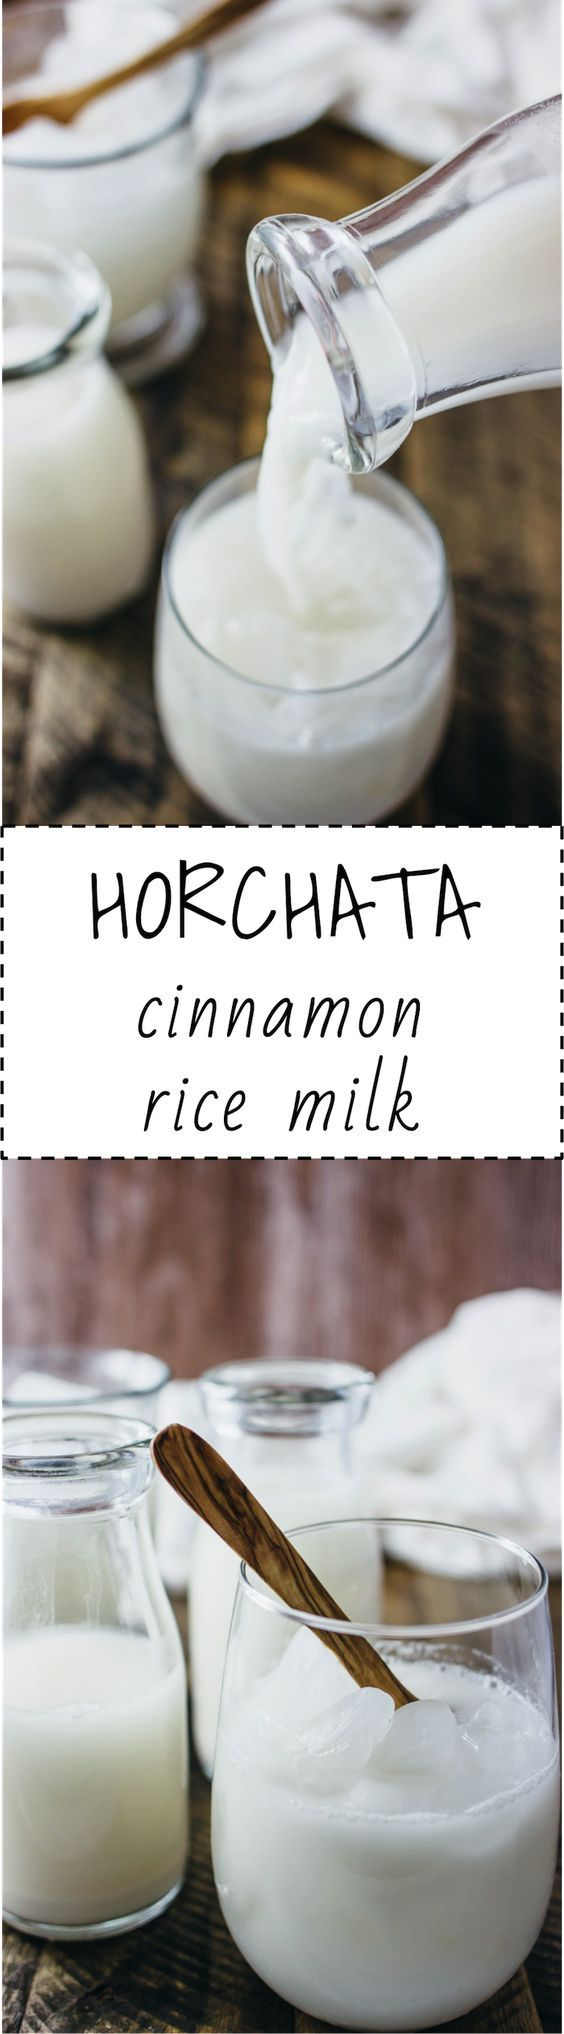 Horchata: cinnamon rice milk - A Mexican creamy rice milk with blended cinnamon, vanilla, and honey that is perfect for a hot, summery day. This is so refreshing to drink when served over ice cubes. - savorytooth.com via @savory_tooth: